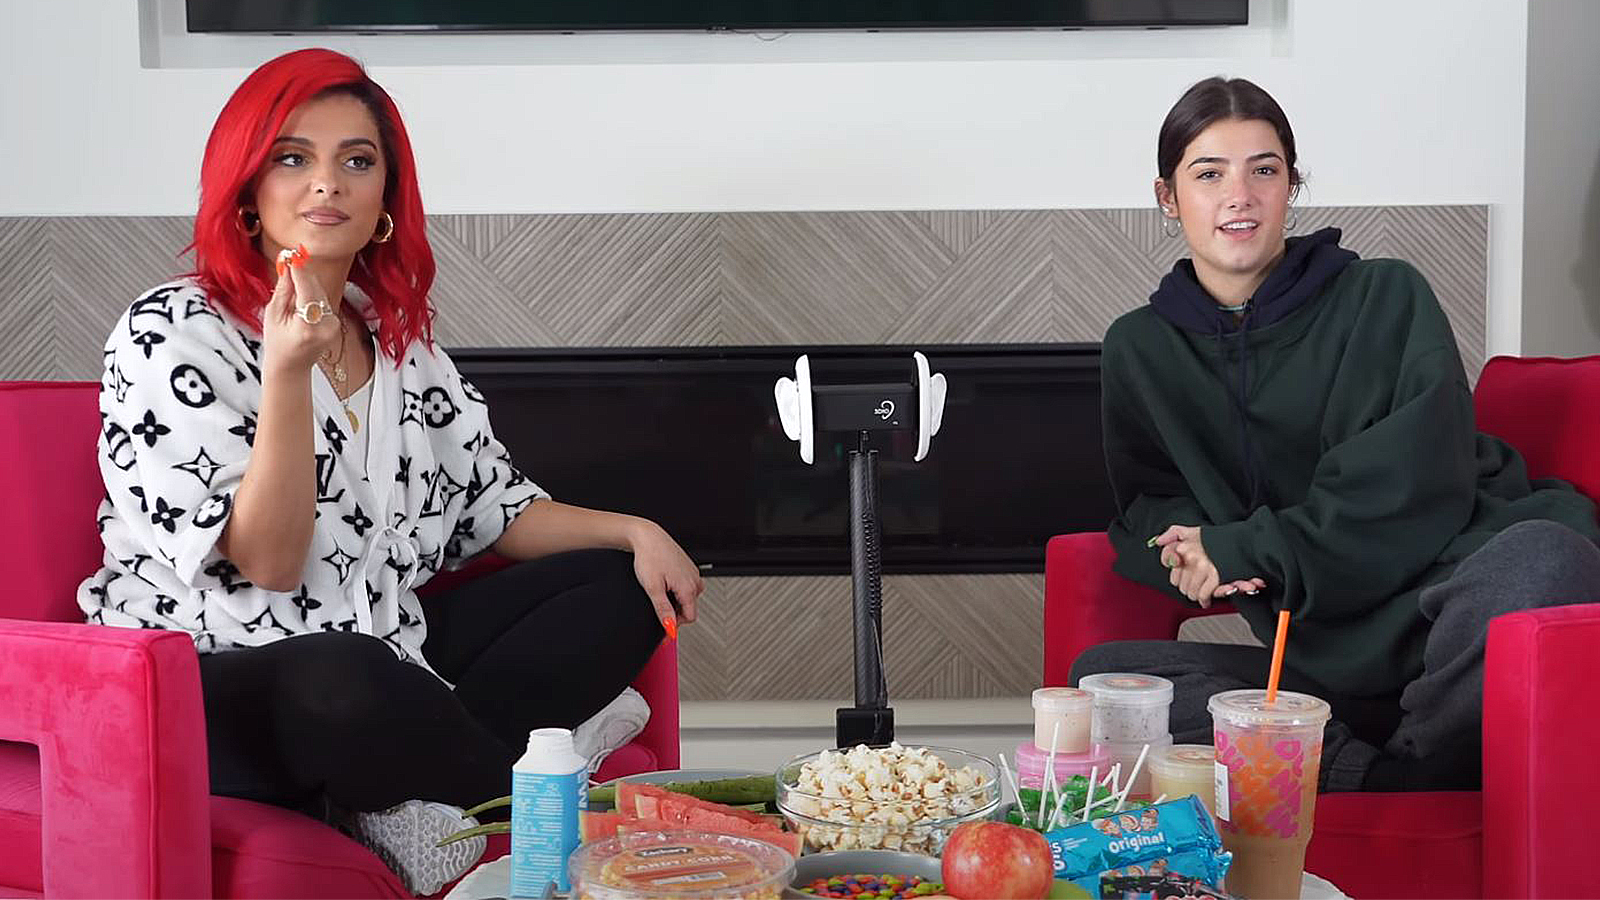 Charli D'Amelio and Bebe Rexha sit in front of a spread of candy and an ASMR mic.